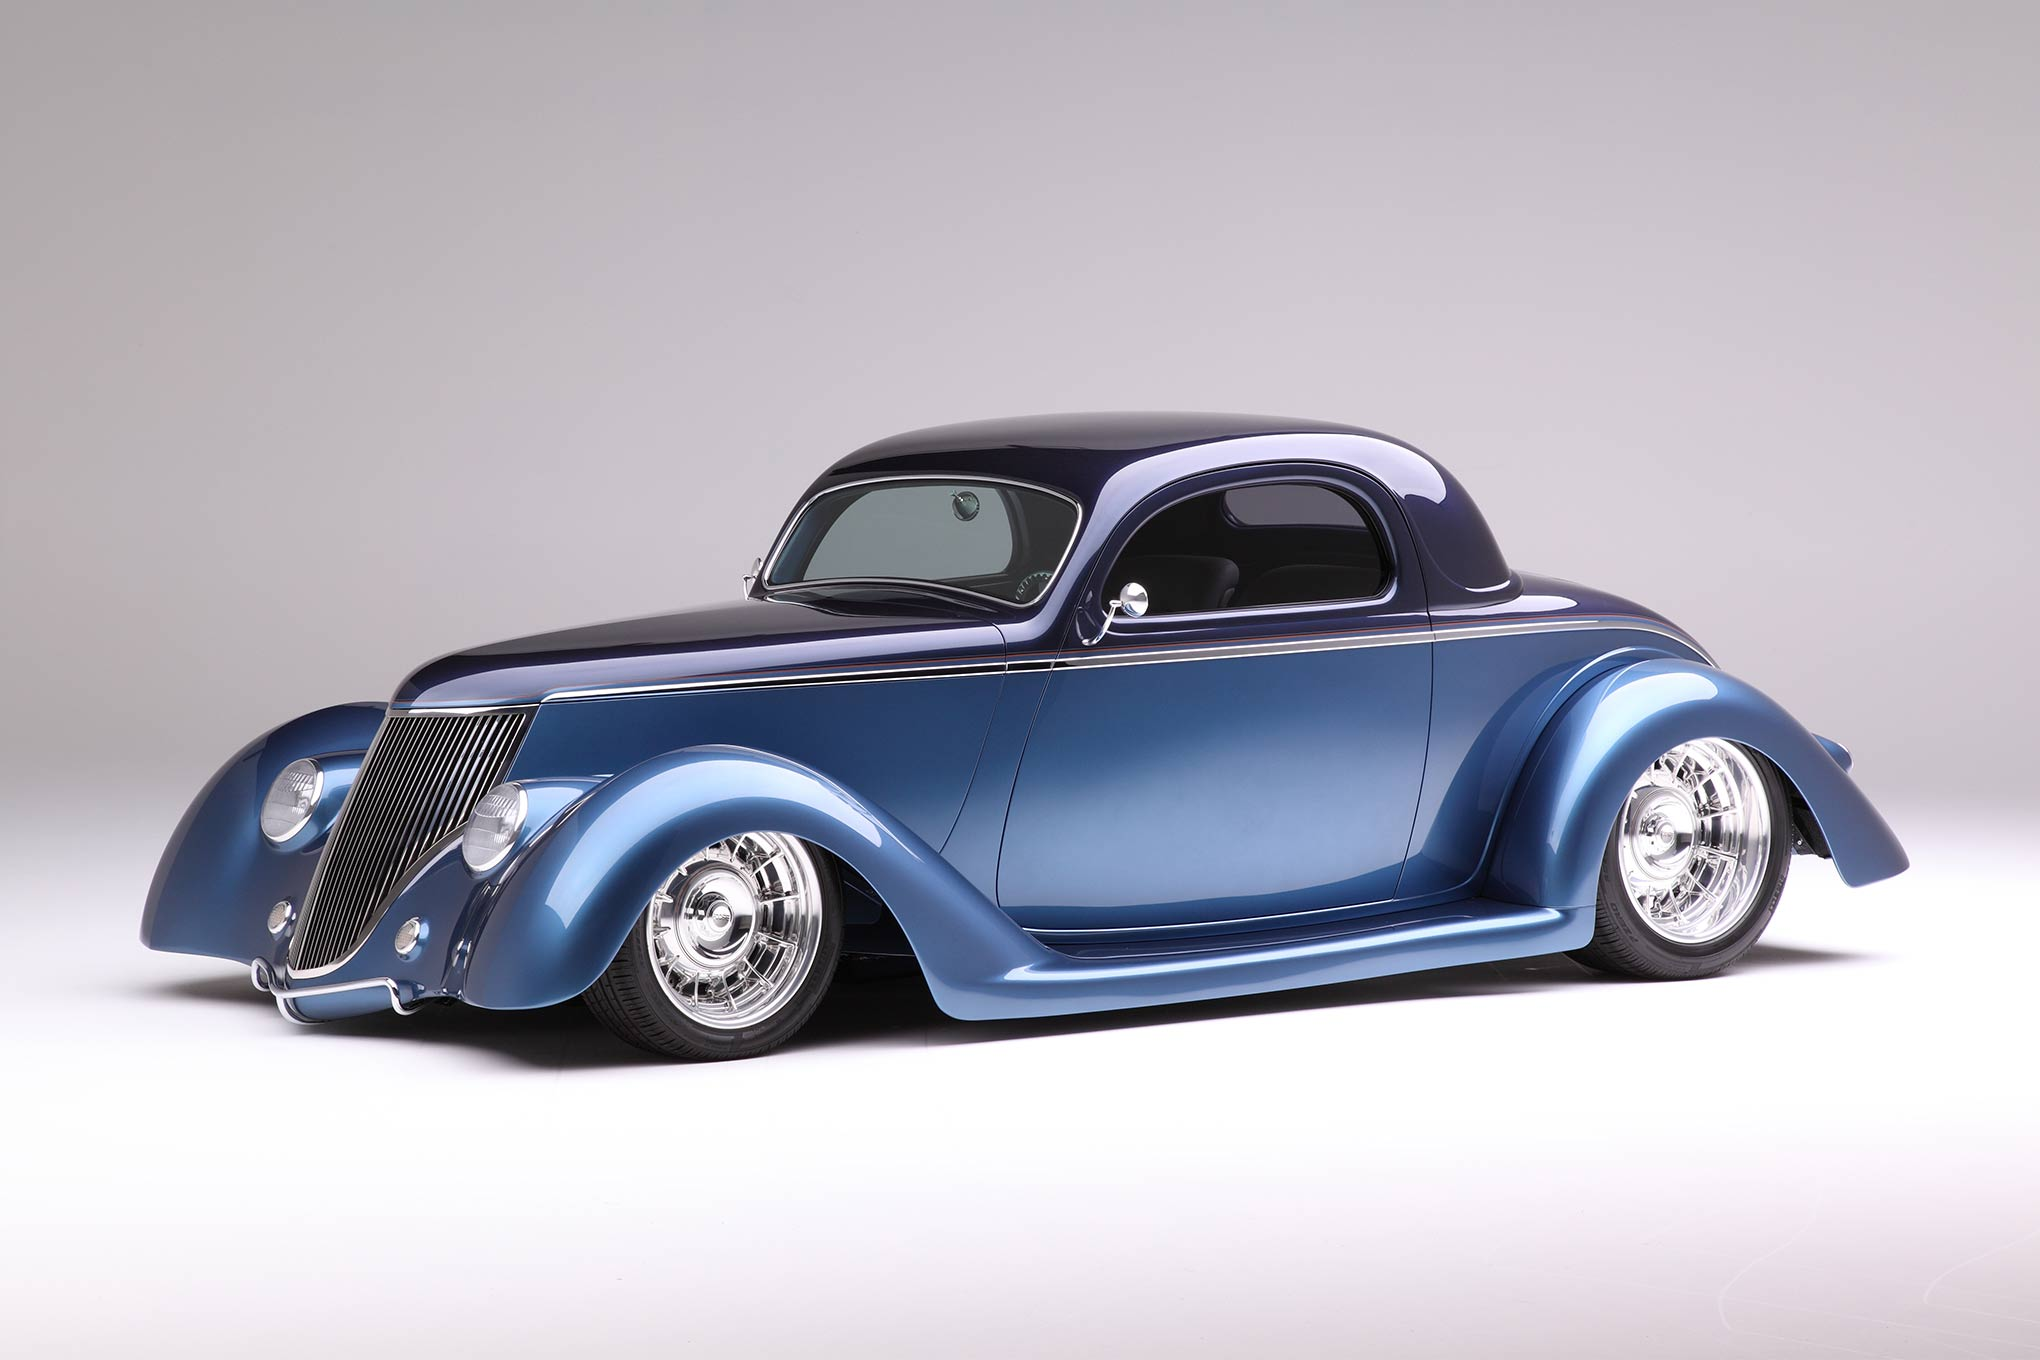 Street Racing Cars Wallpaper With Girls 1936 Ford Coupe Is Chip Foose Designed And Handformed In